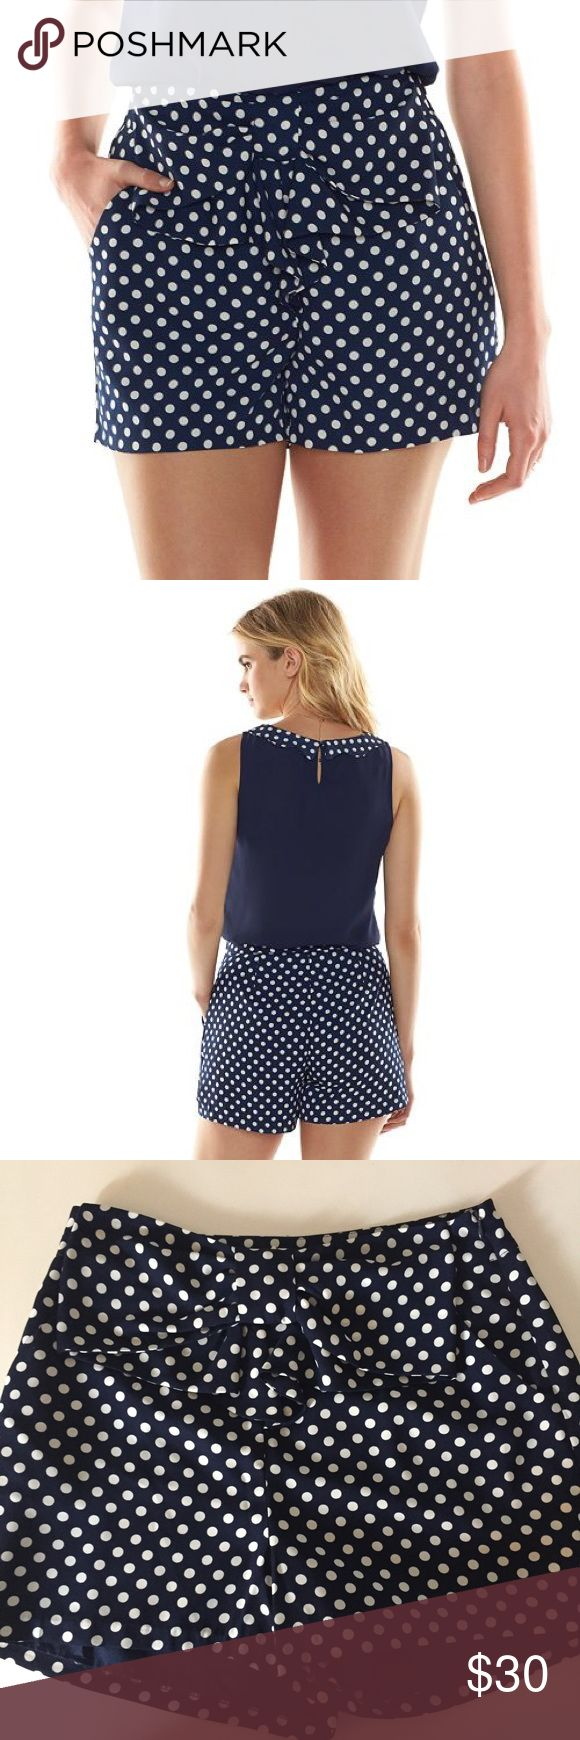 NEW! Polka-Dot Lauren Conrad for Disney Shorts NWT, navy shorts with white polka-dots from the Lauren Conrad for Disney collection. These high-rise shorts feature a cute bow, pockets and a side zipper closure. Perfect for a trip to Disneyland, Disney On Ice or just a day of Disney Bounding. LC Lauren Conrad Shorts